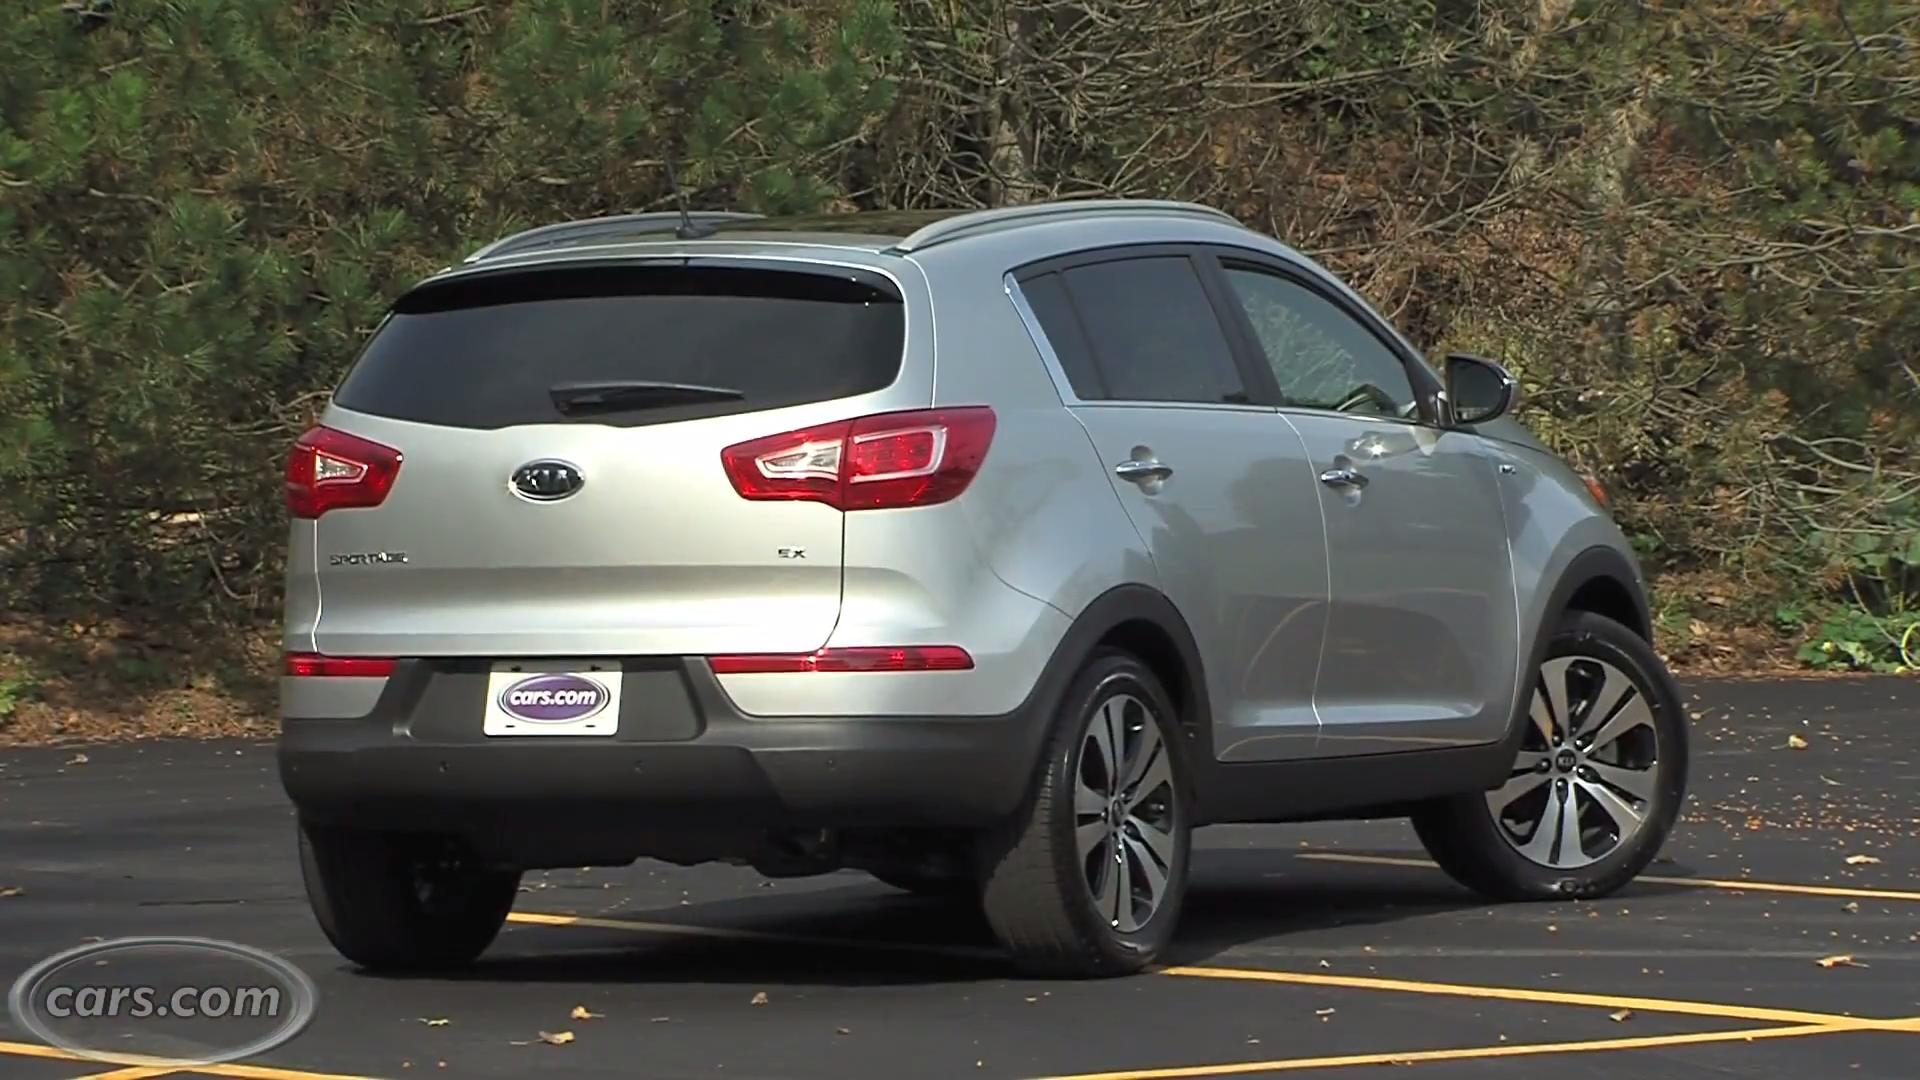 2011 Kia Sportage Expert Reviews, Specs and Photos | Cars.com